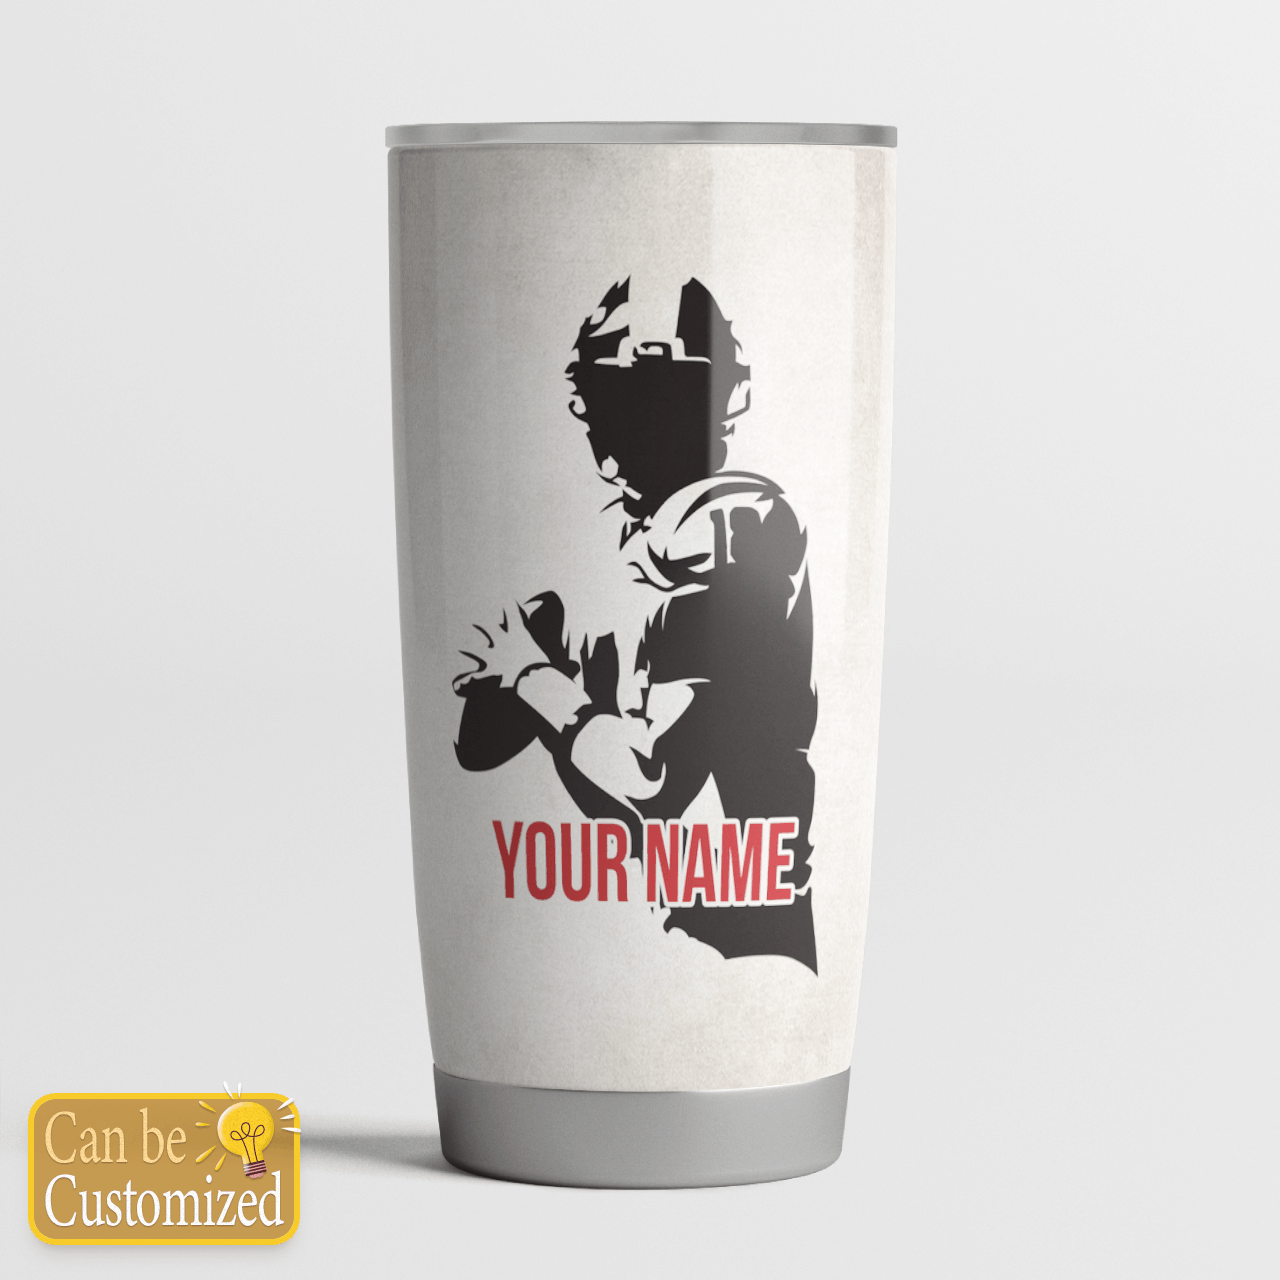 Personalized tumbler American football rugby thanks dad